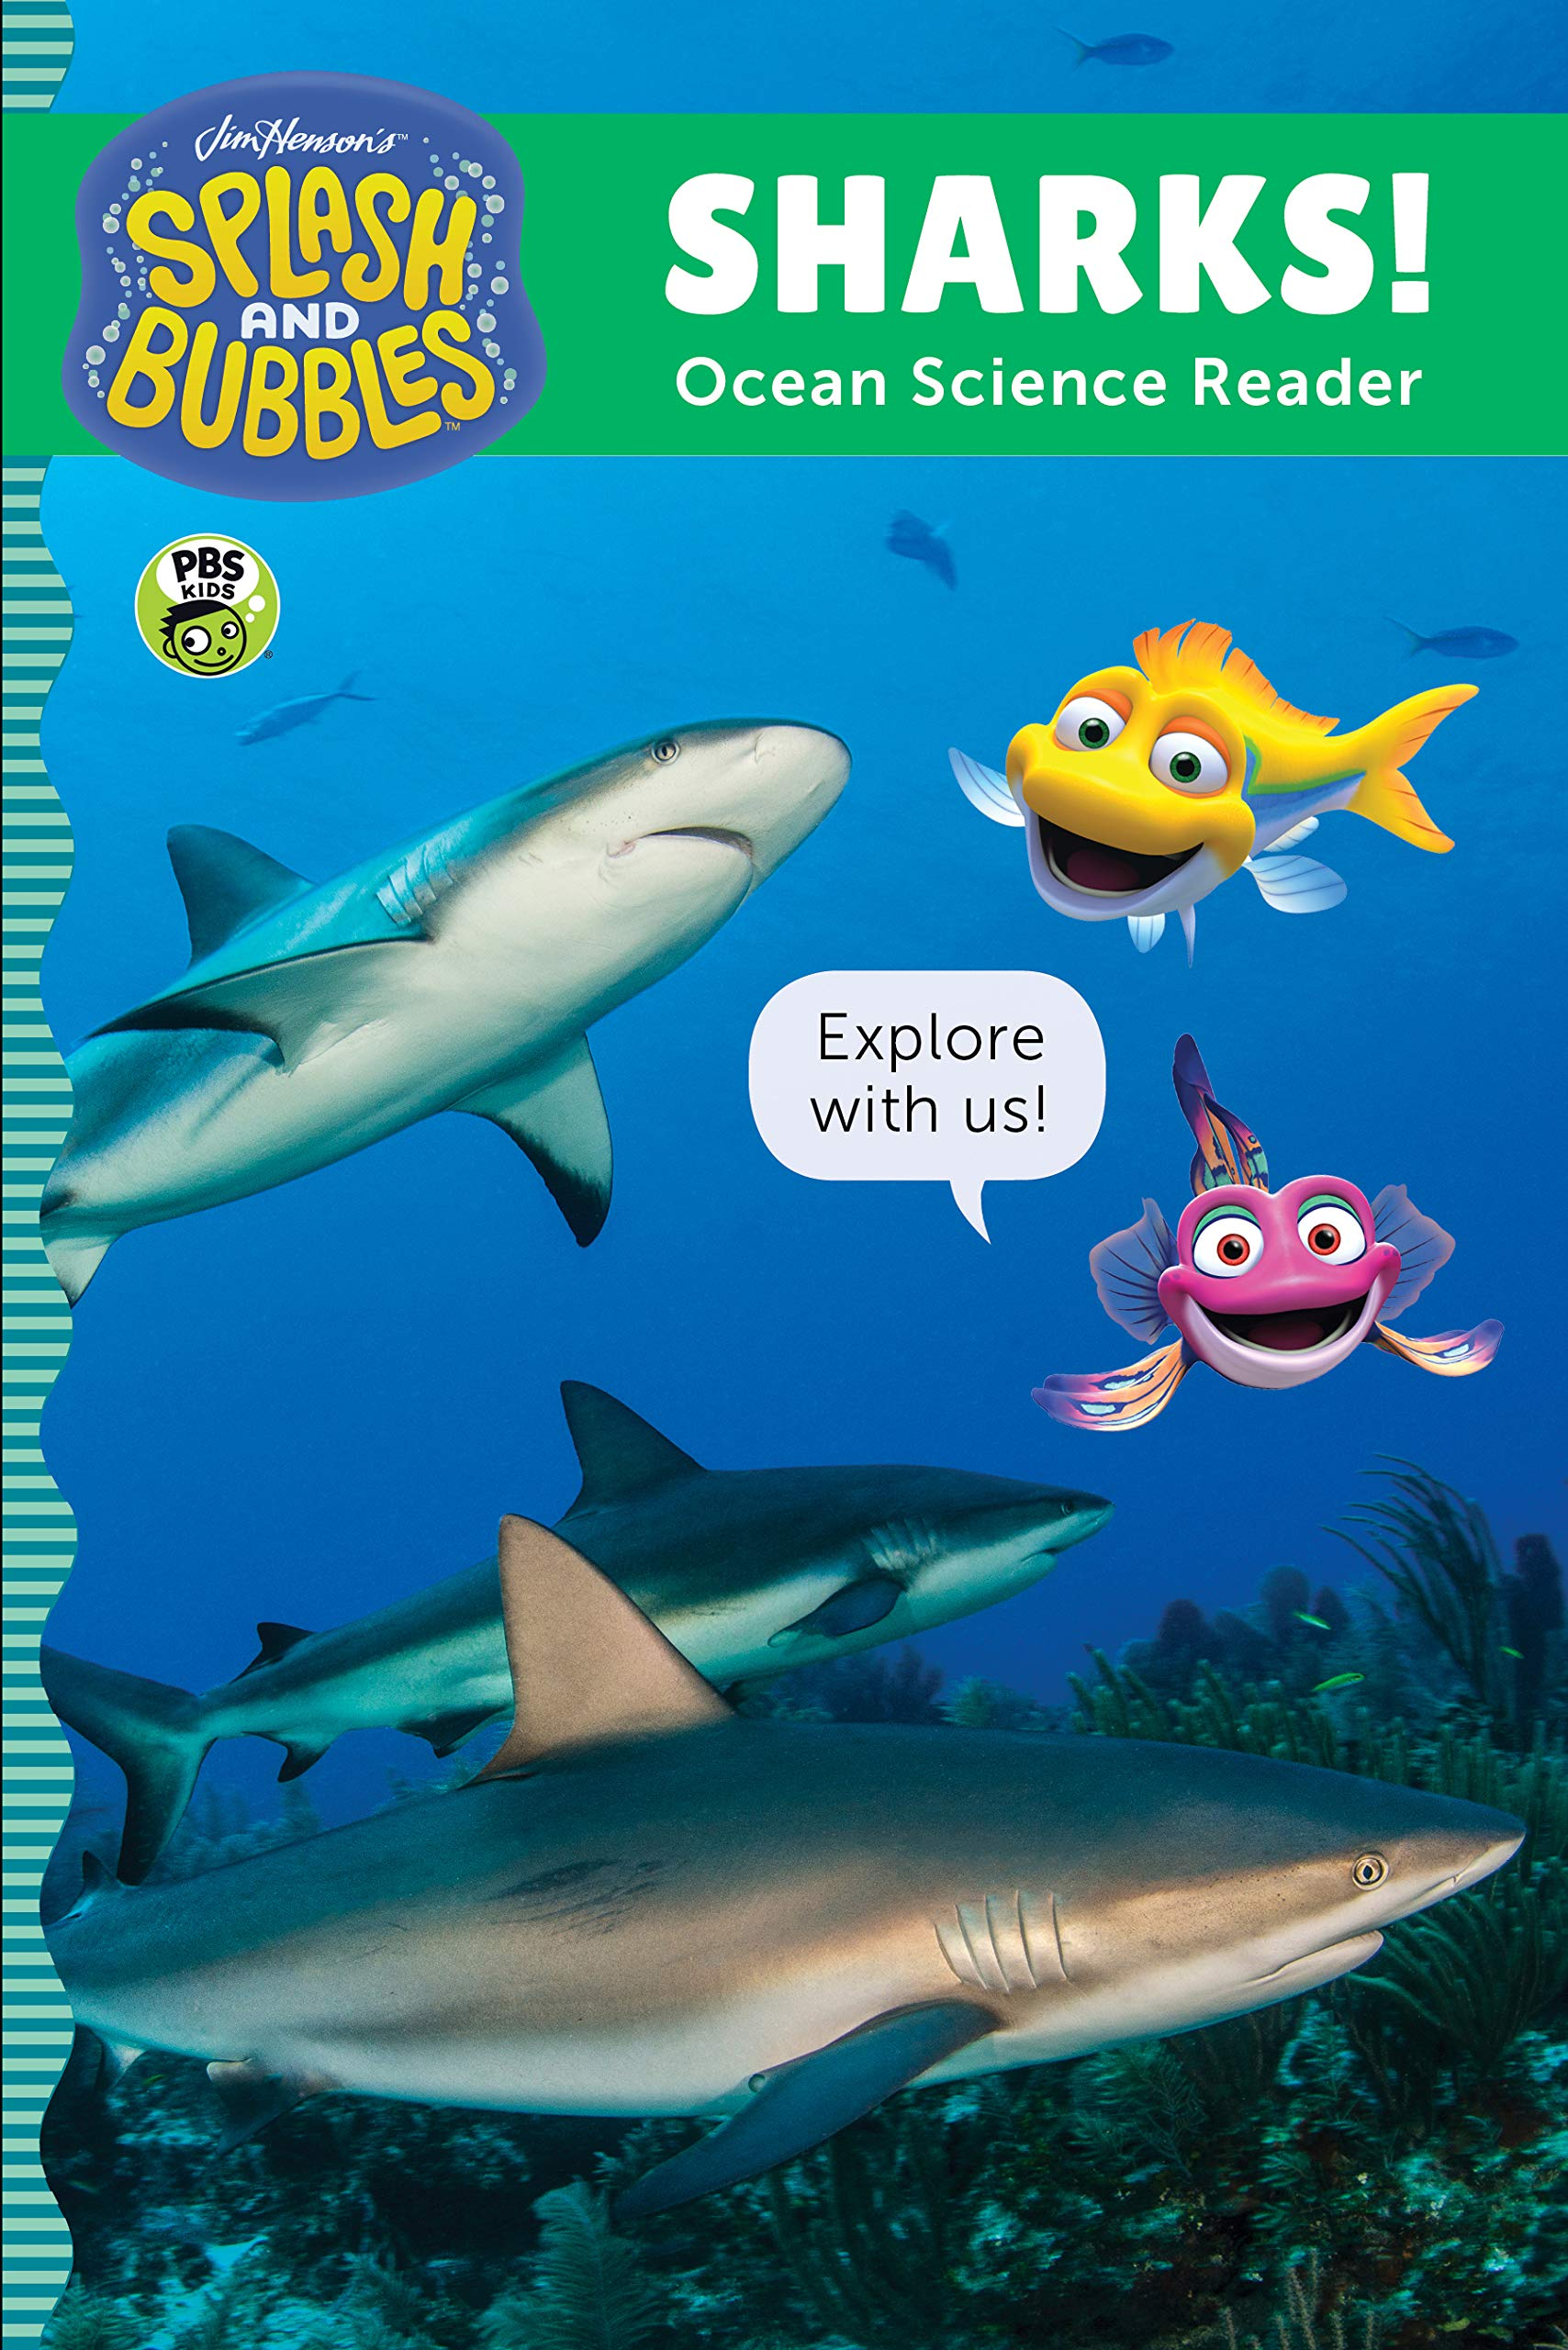 Splash and Bubbles: Sharks!